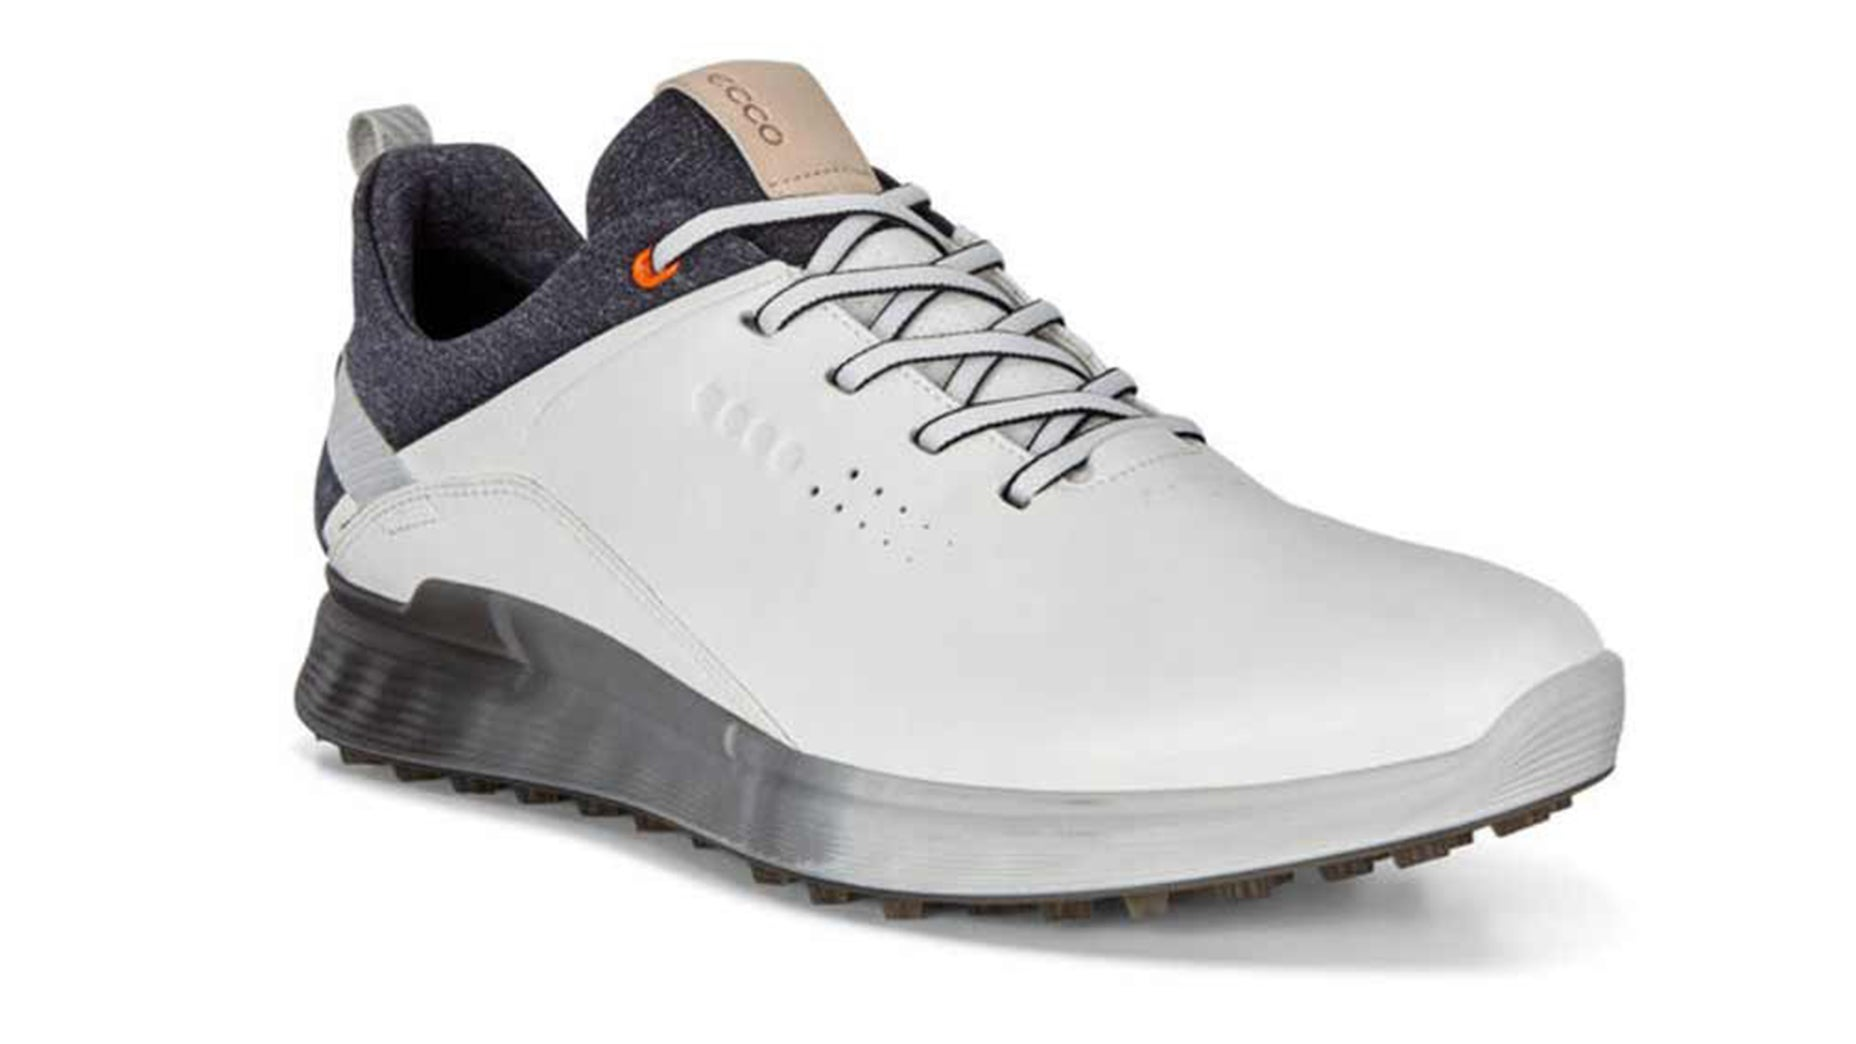 The S-Three golf shoe uses proprietary technology to provide premium support, traction and comfort to all golfers without sacrificing style.